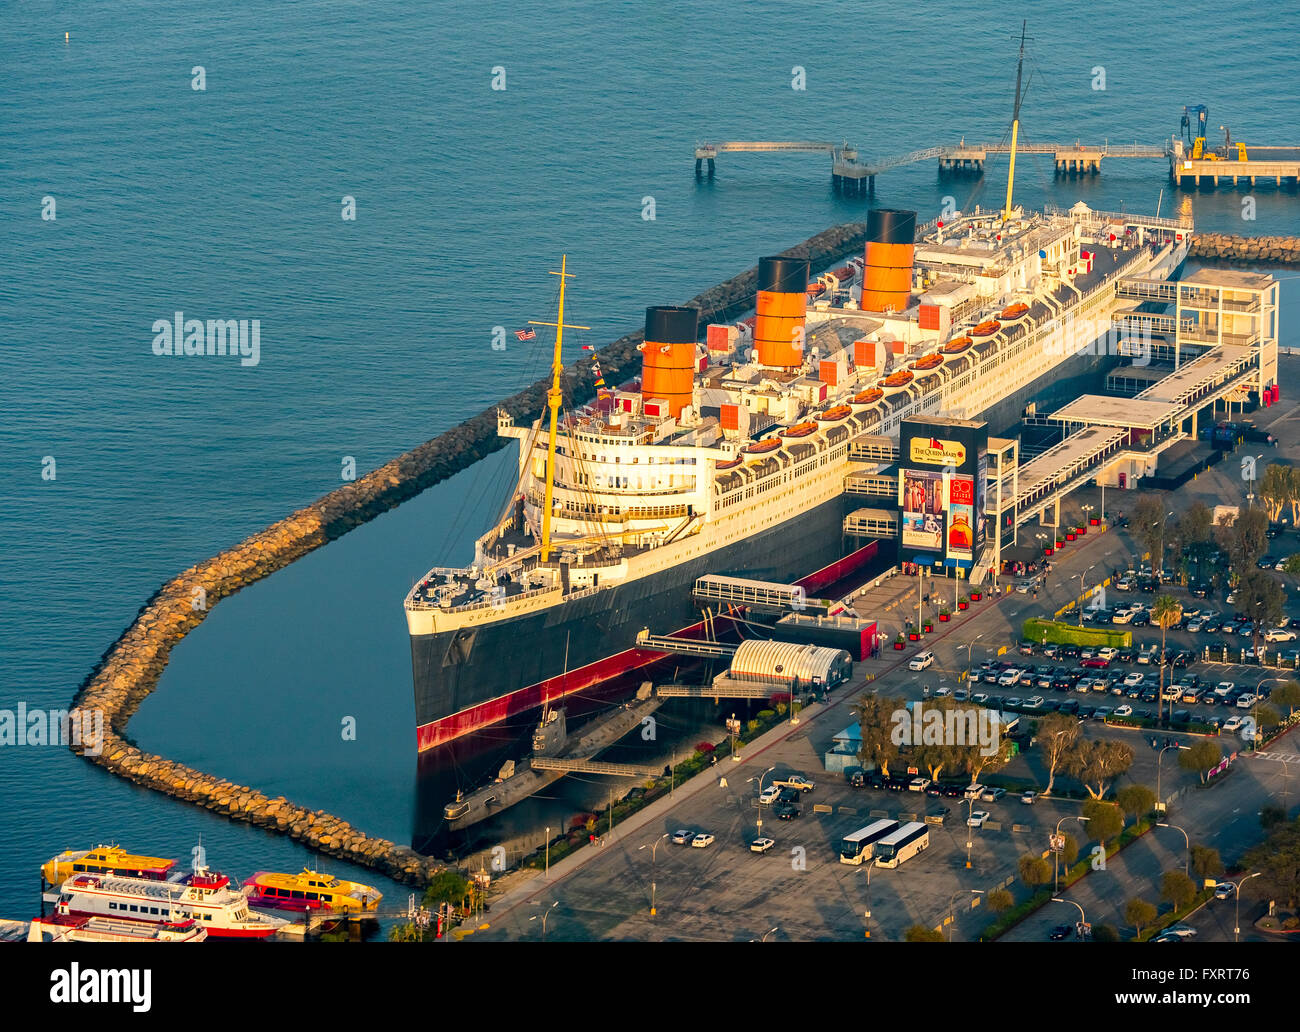 The Queen Mary Hotel In Long Beach Ca